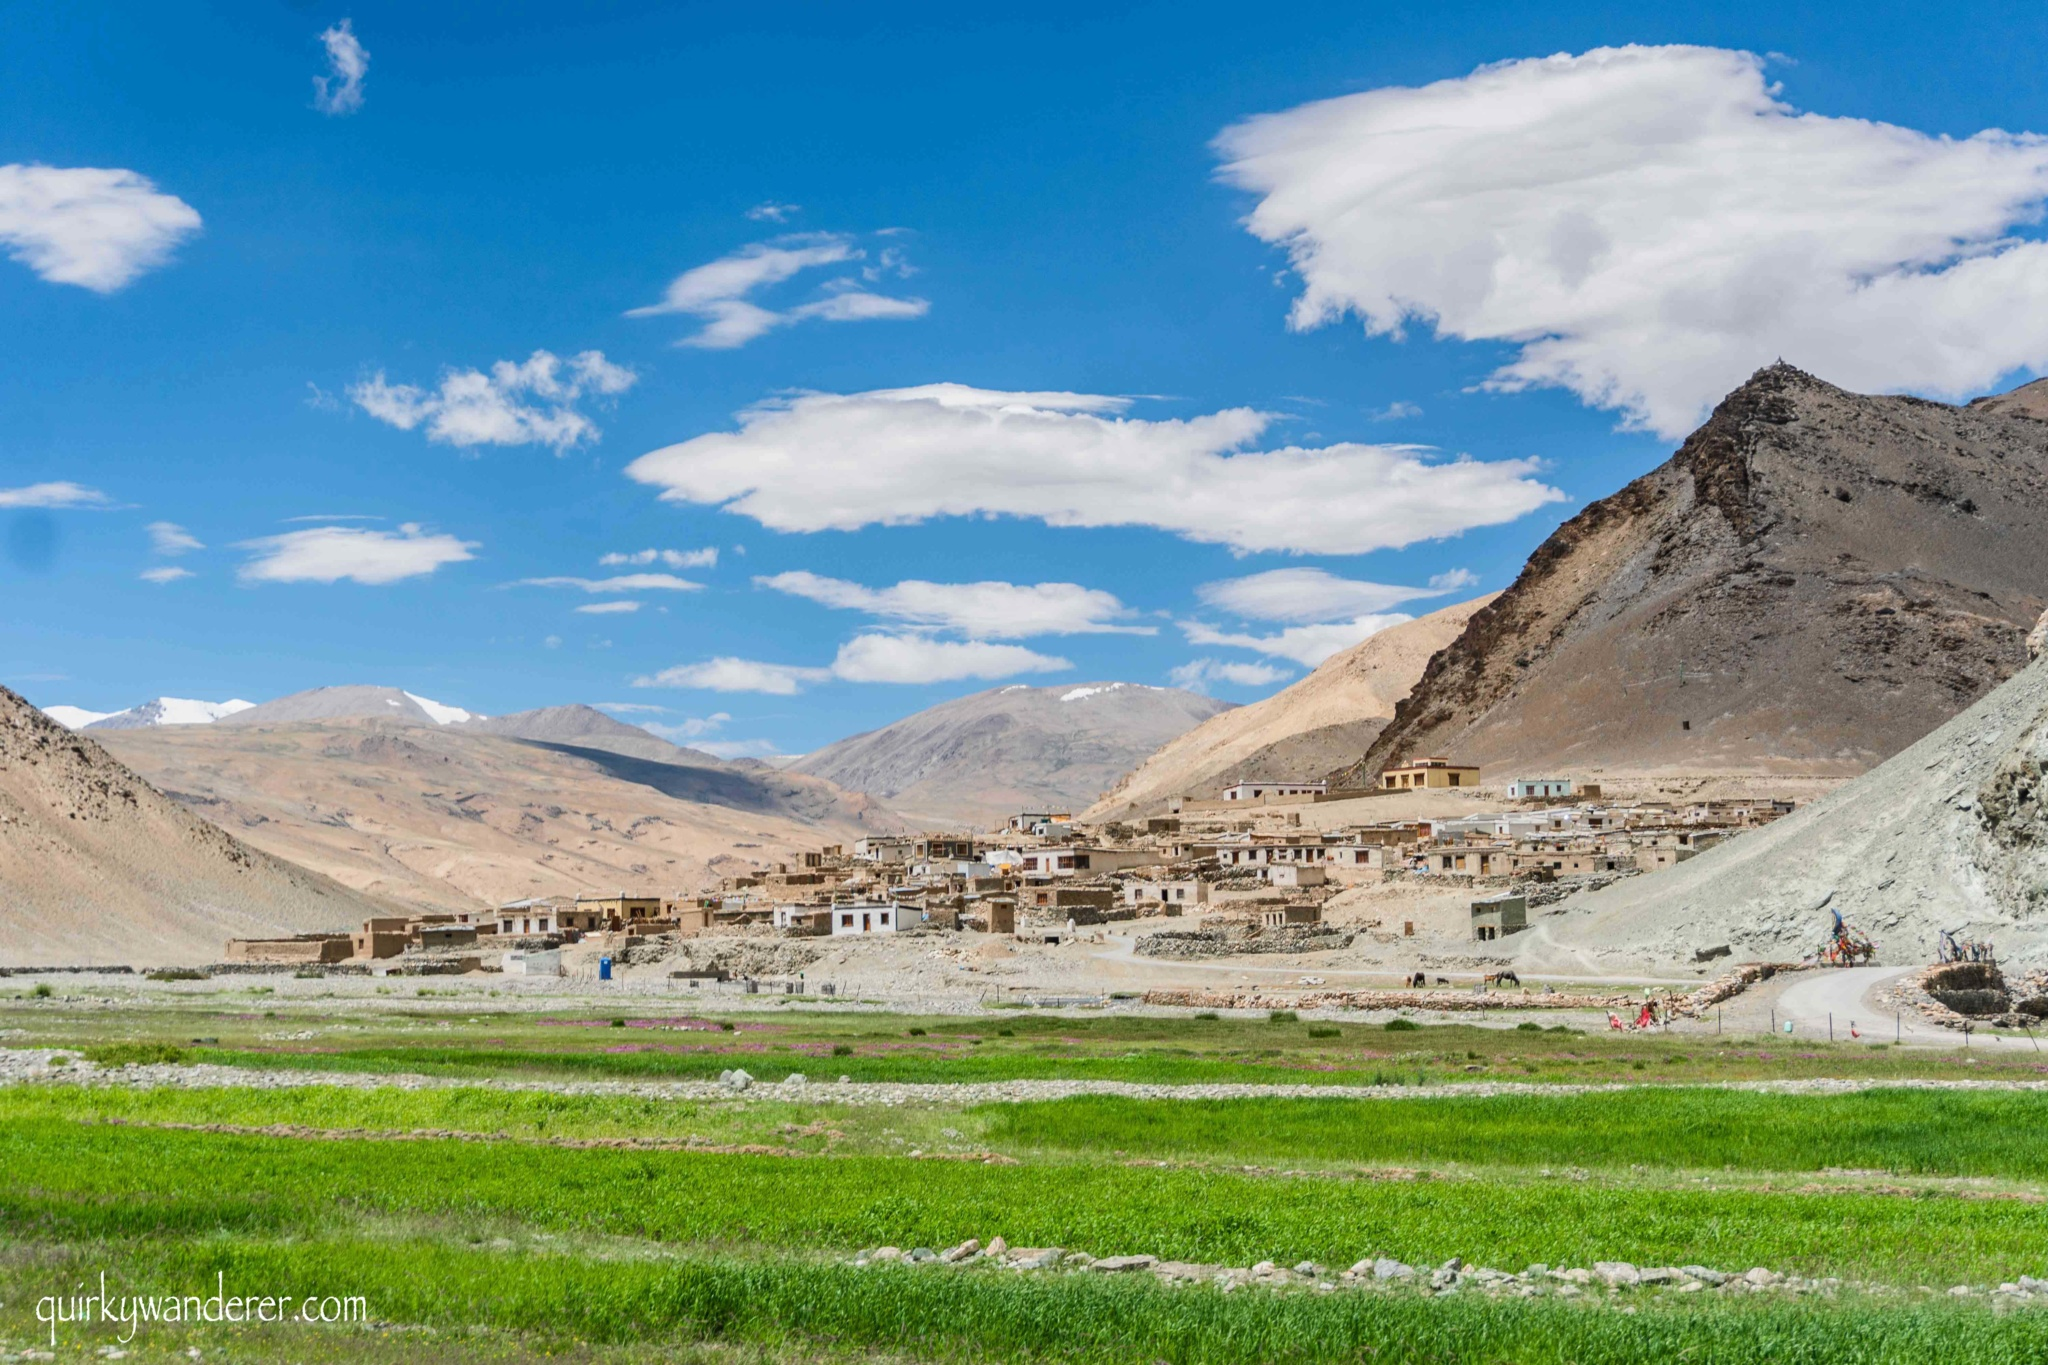 Villages in Ladakh